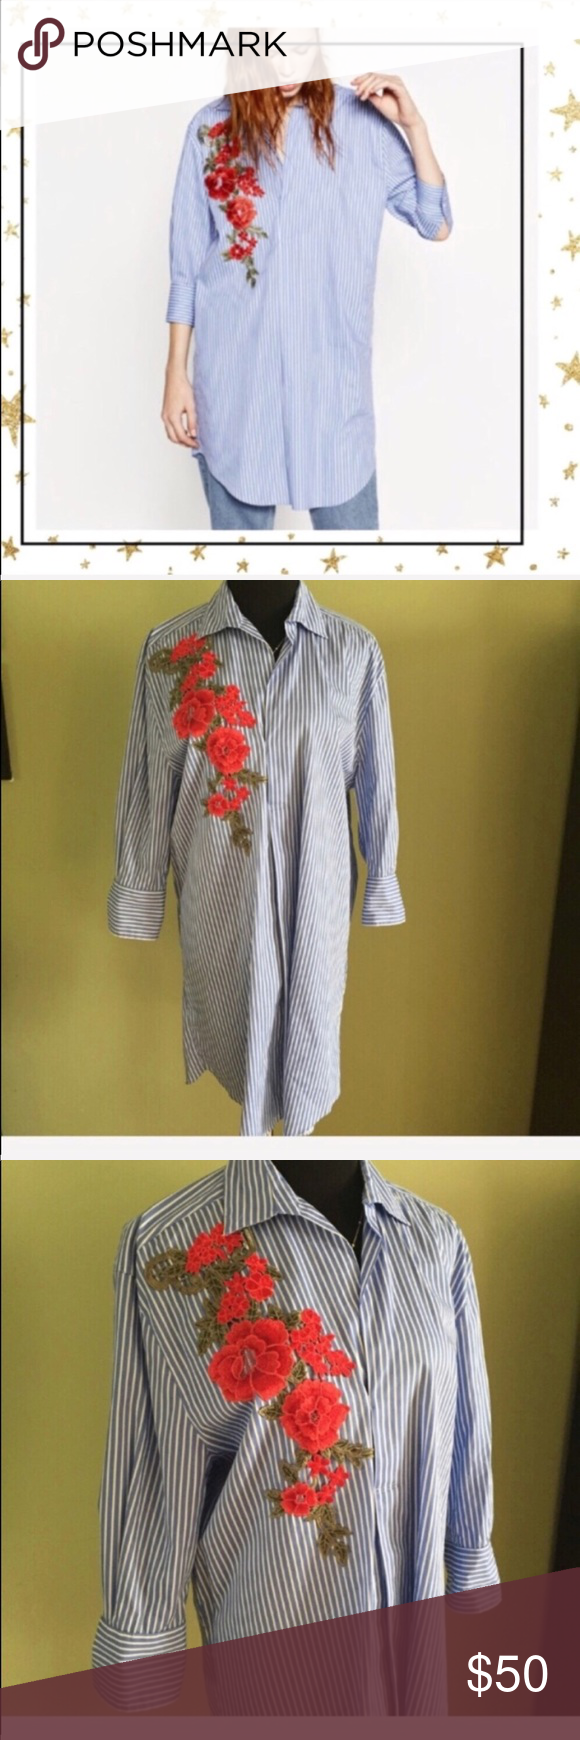 Zara Overdized Shirt Dress With Flower Patch White And Blue